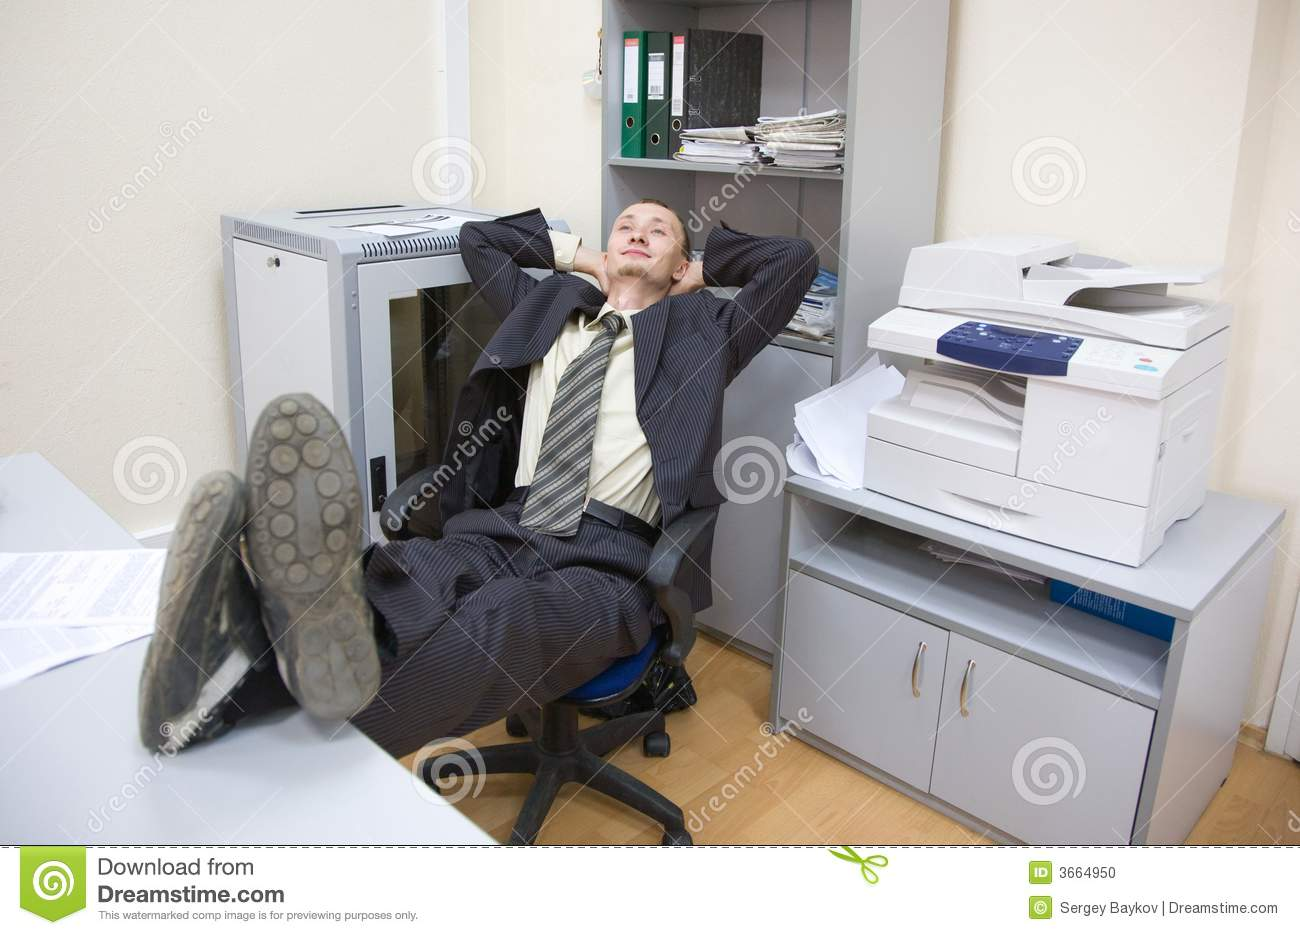 Relax After Finished Work Stock Photo   Image  3664950